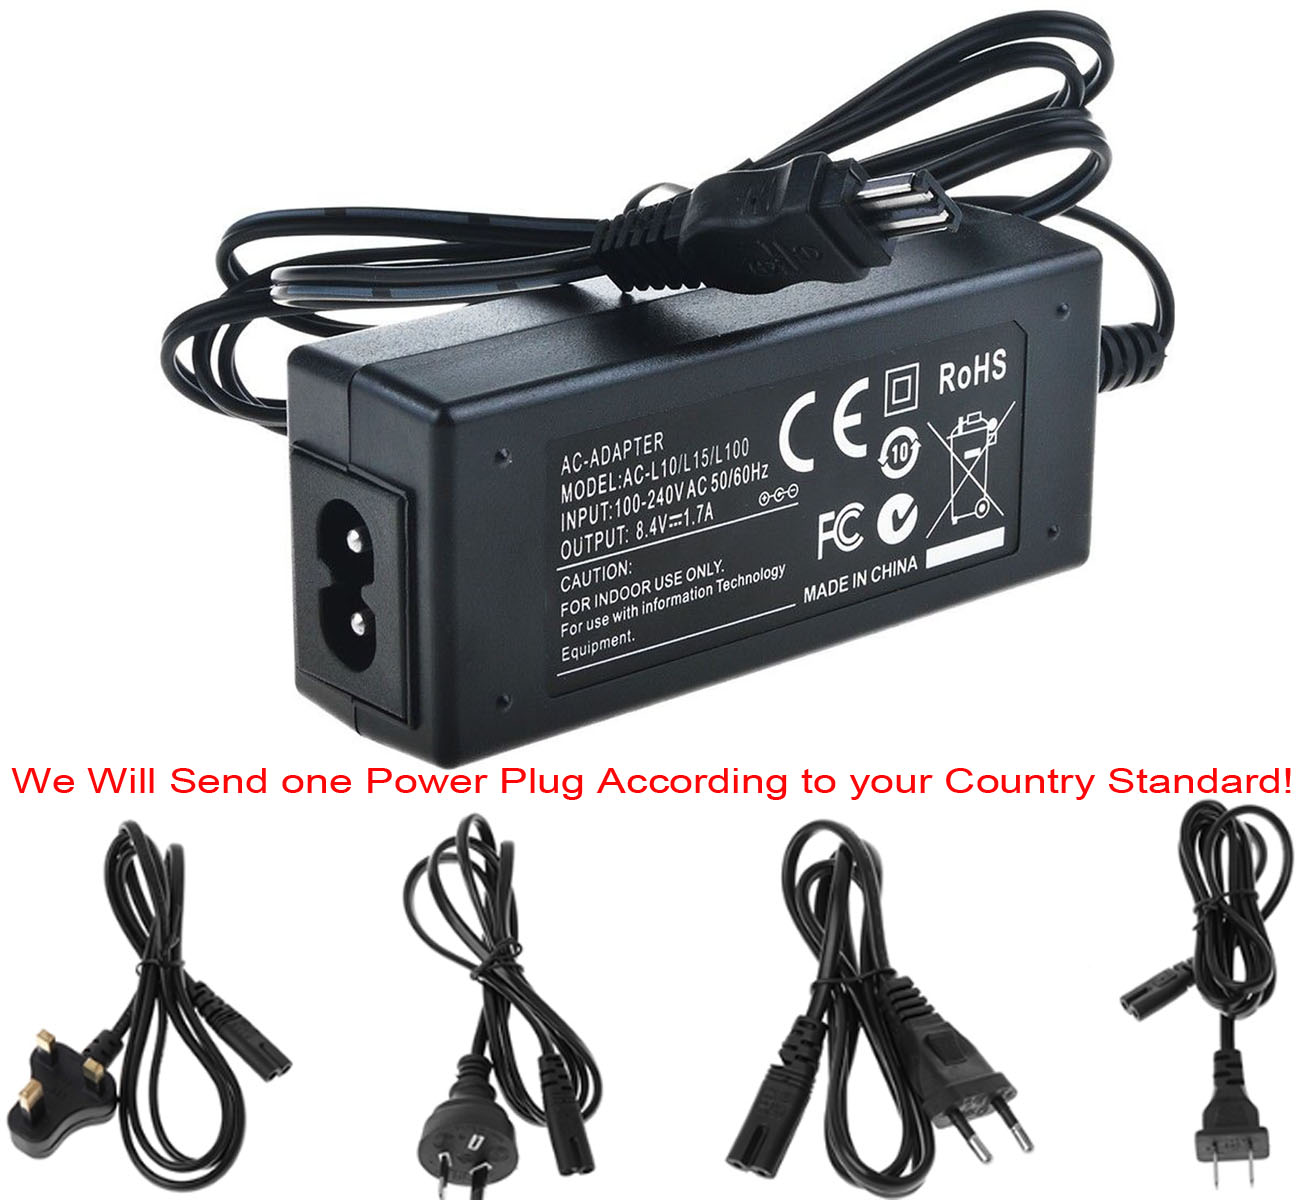 DCR-SX31E AC Power Adapter Charger for Sony DCR-SX30E DCR-SX33E DCR-SX34E Handycam Camcorder